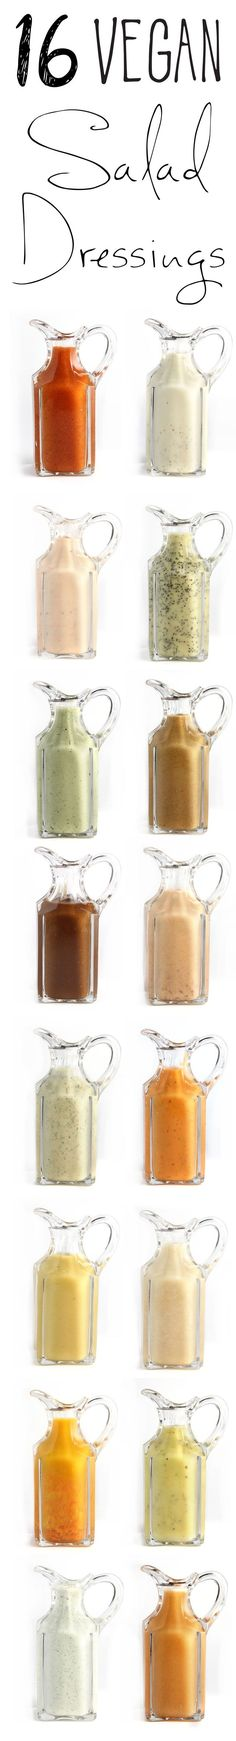 16-vegan-salad-dressings